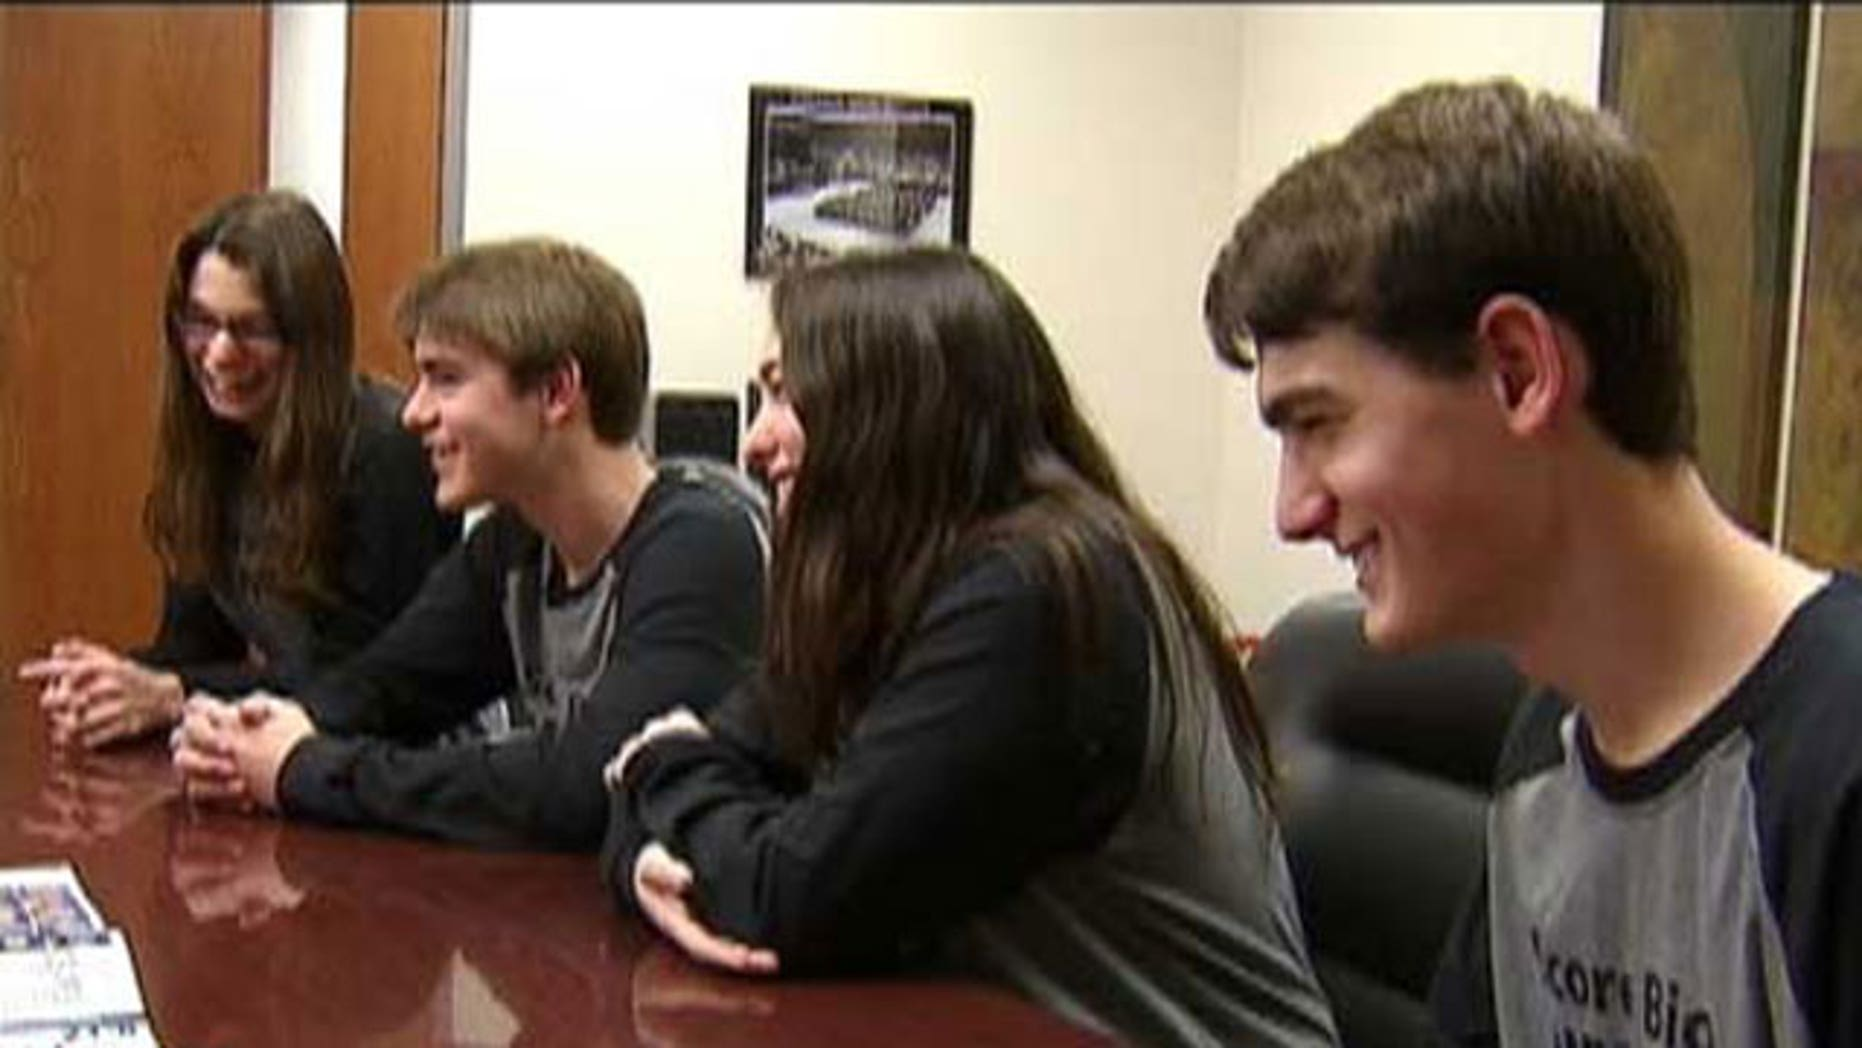 Moria, Thomas, Alanna and Patrick Crowley of Wylie, Tx., were all accepted into Mensa.